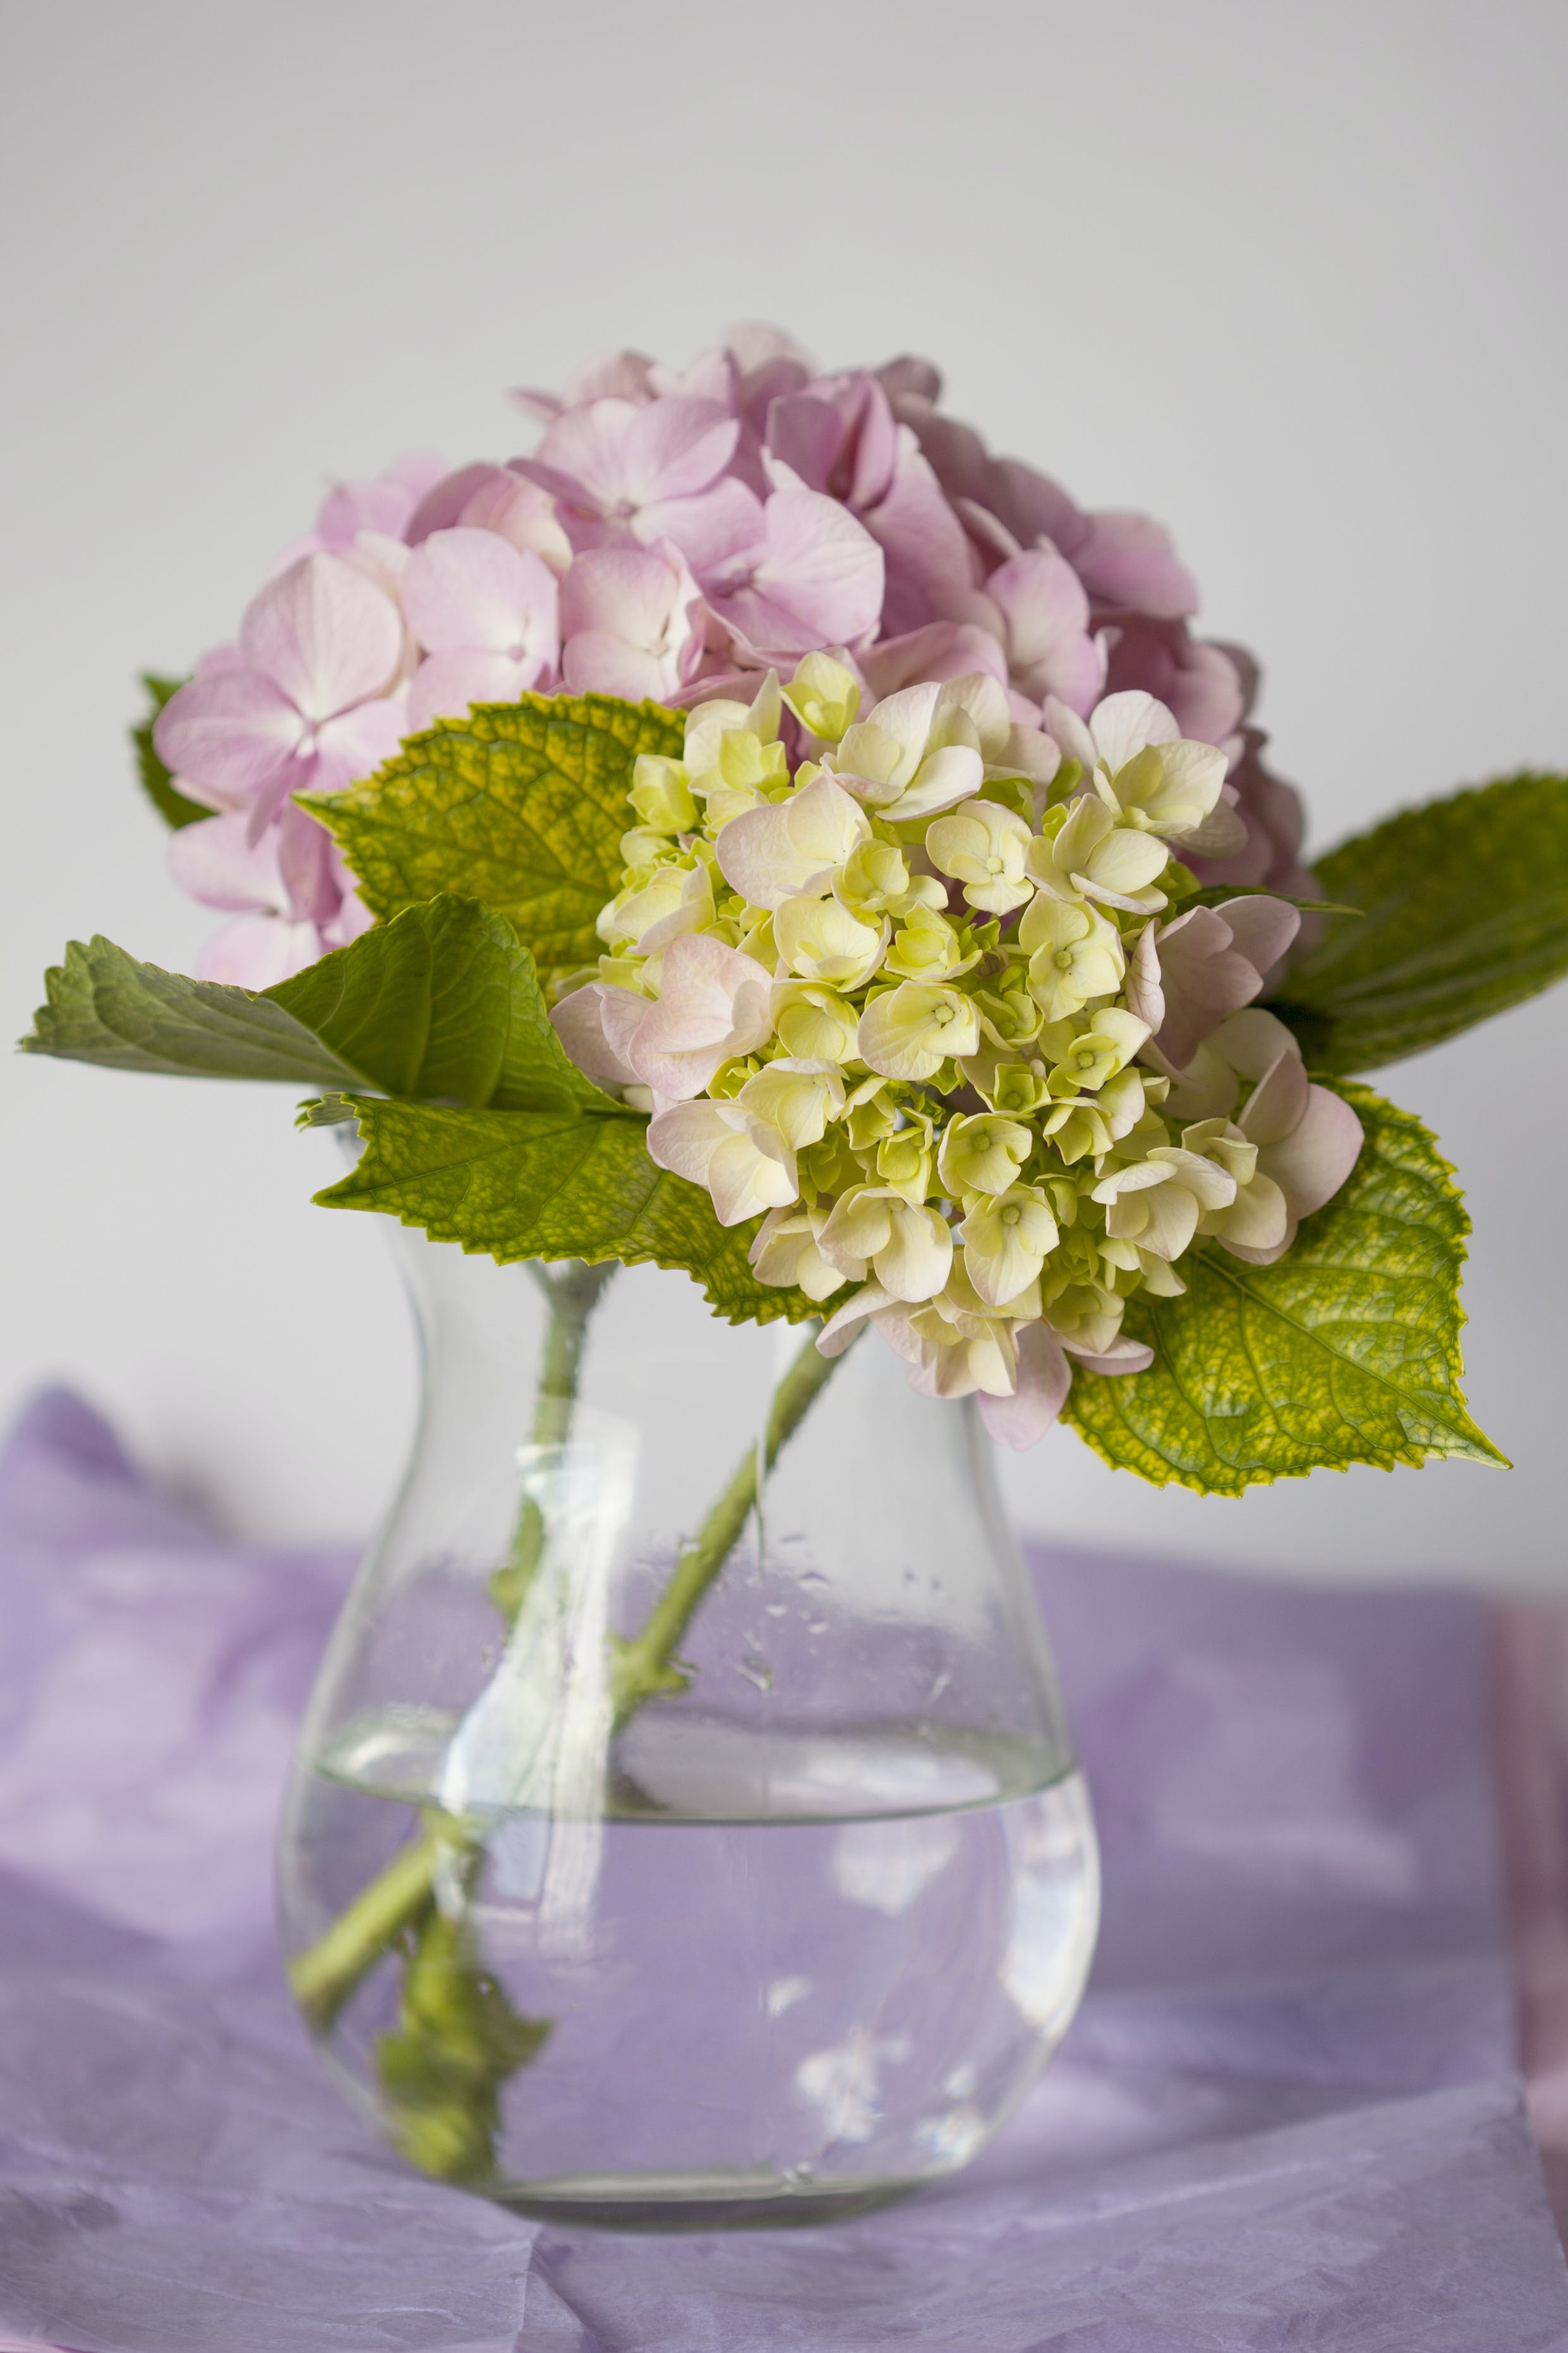 Close-Up Photo of Pink Flowers On Flower Vase